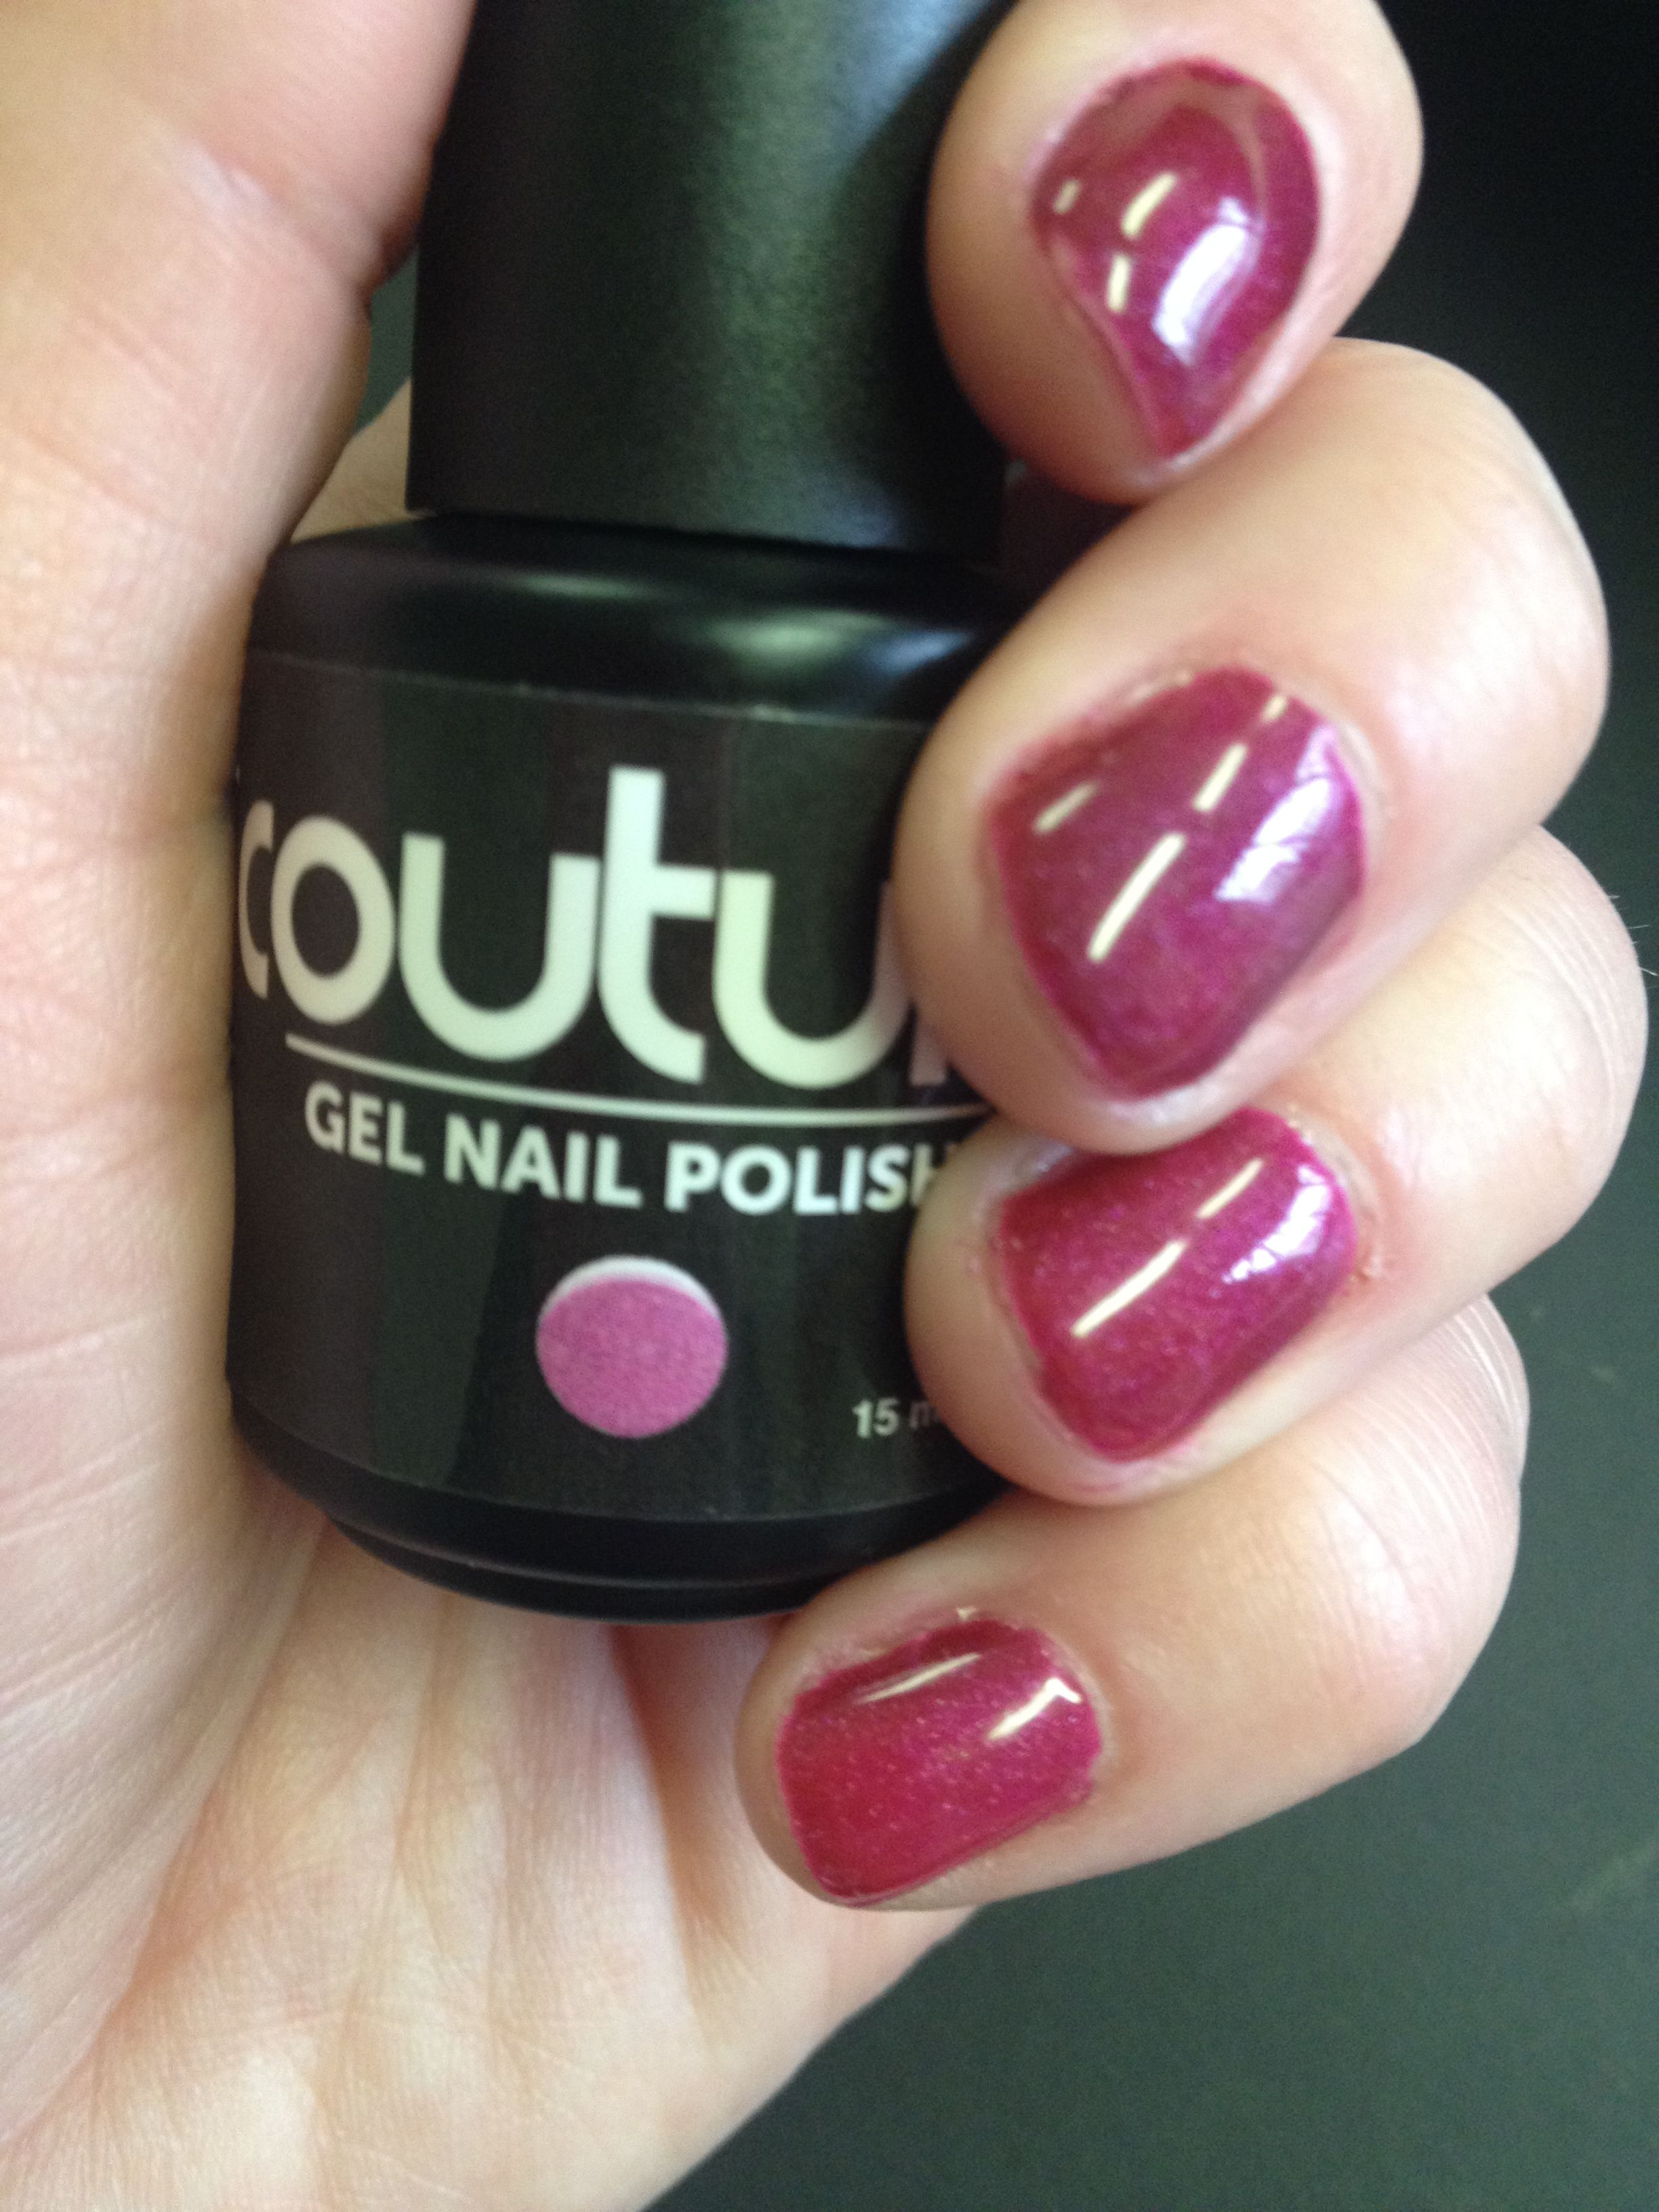 Couture Gel Nail Polish in \